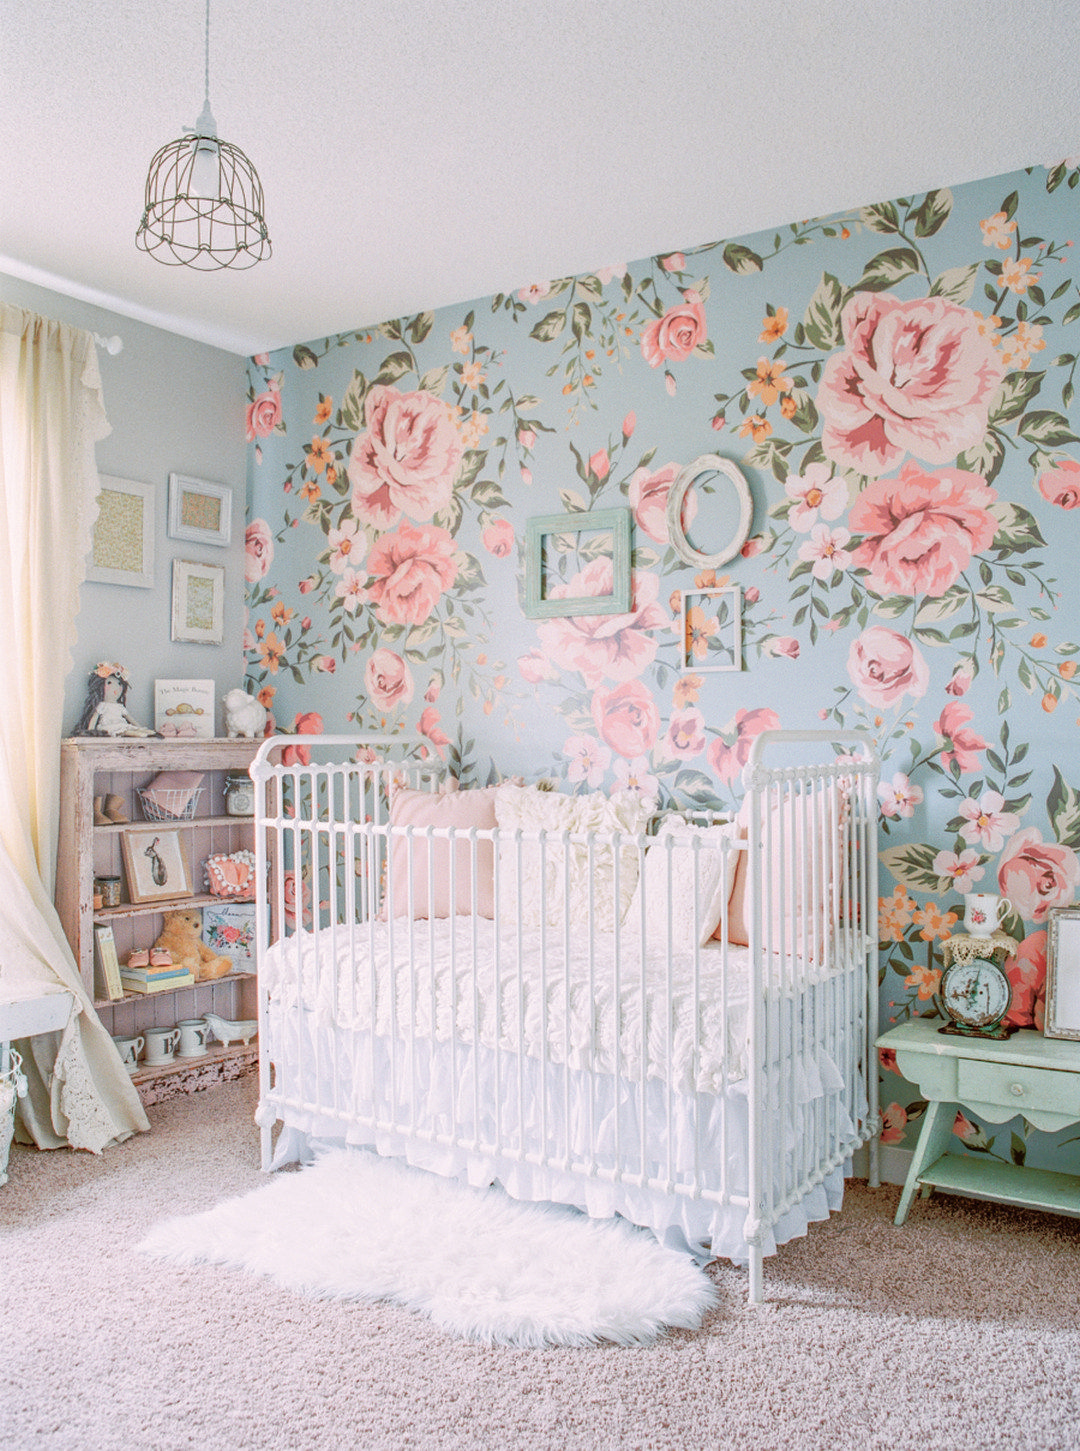 Nursery Themes For Girls 6 Actionable Tips On Baby Girl Nursery Baby Cute Baby Girl